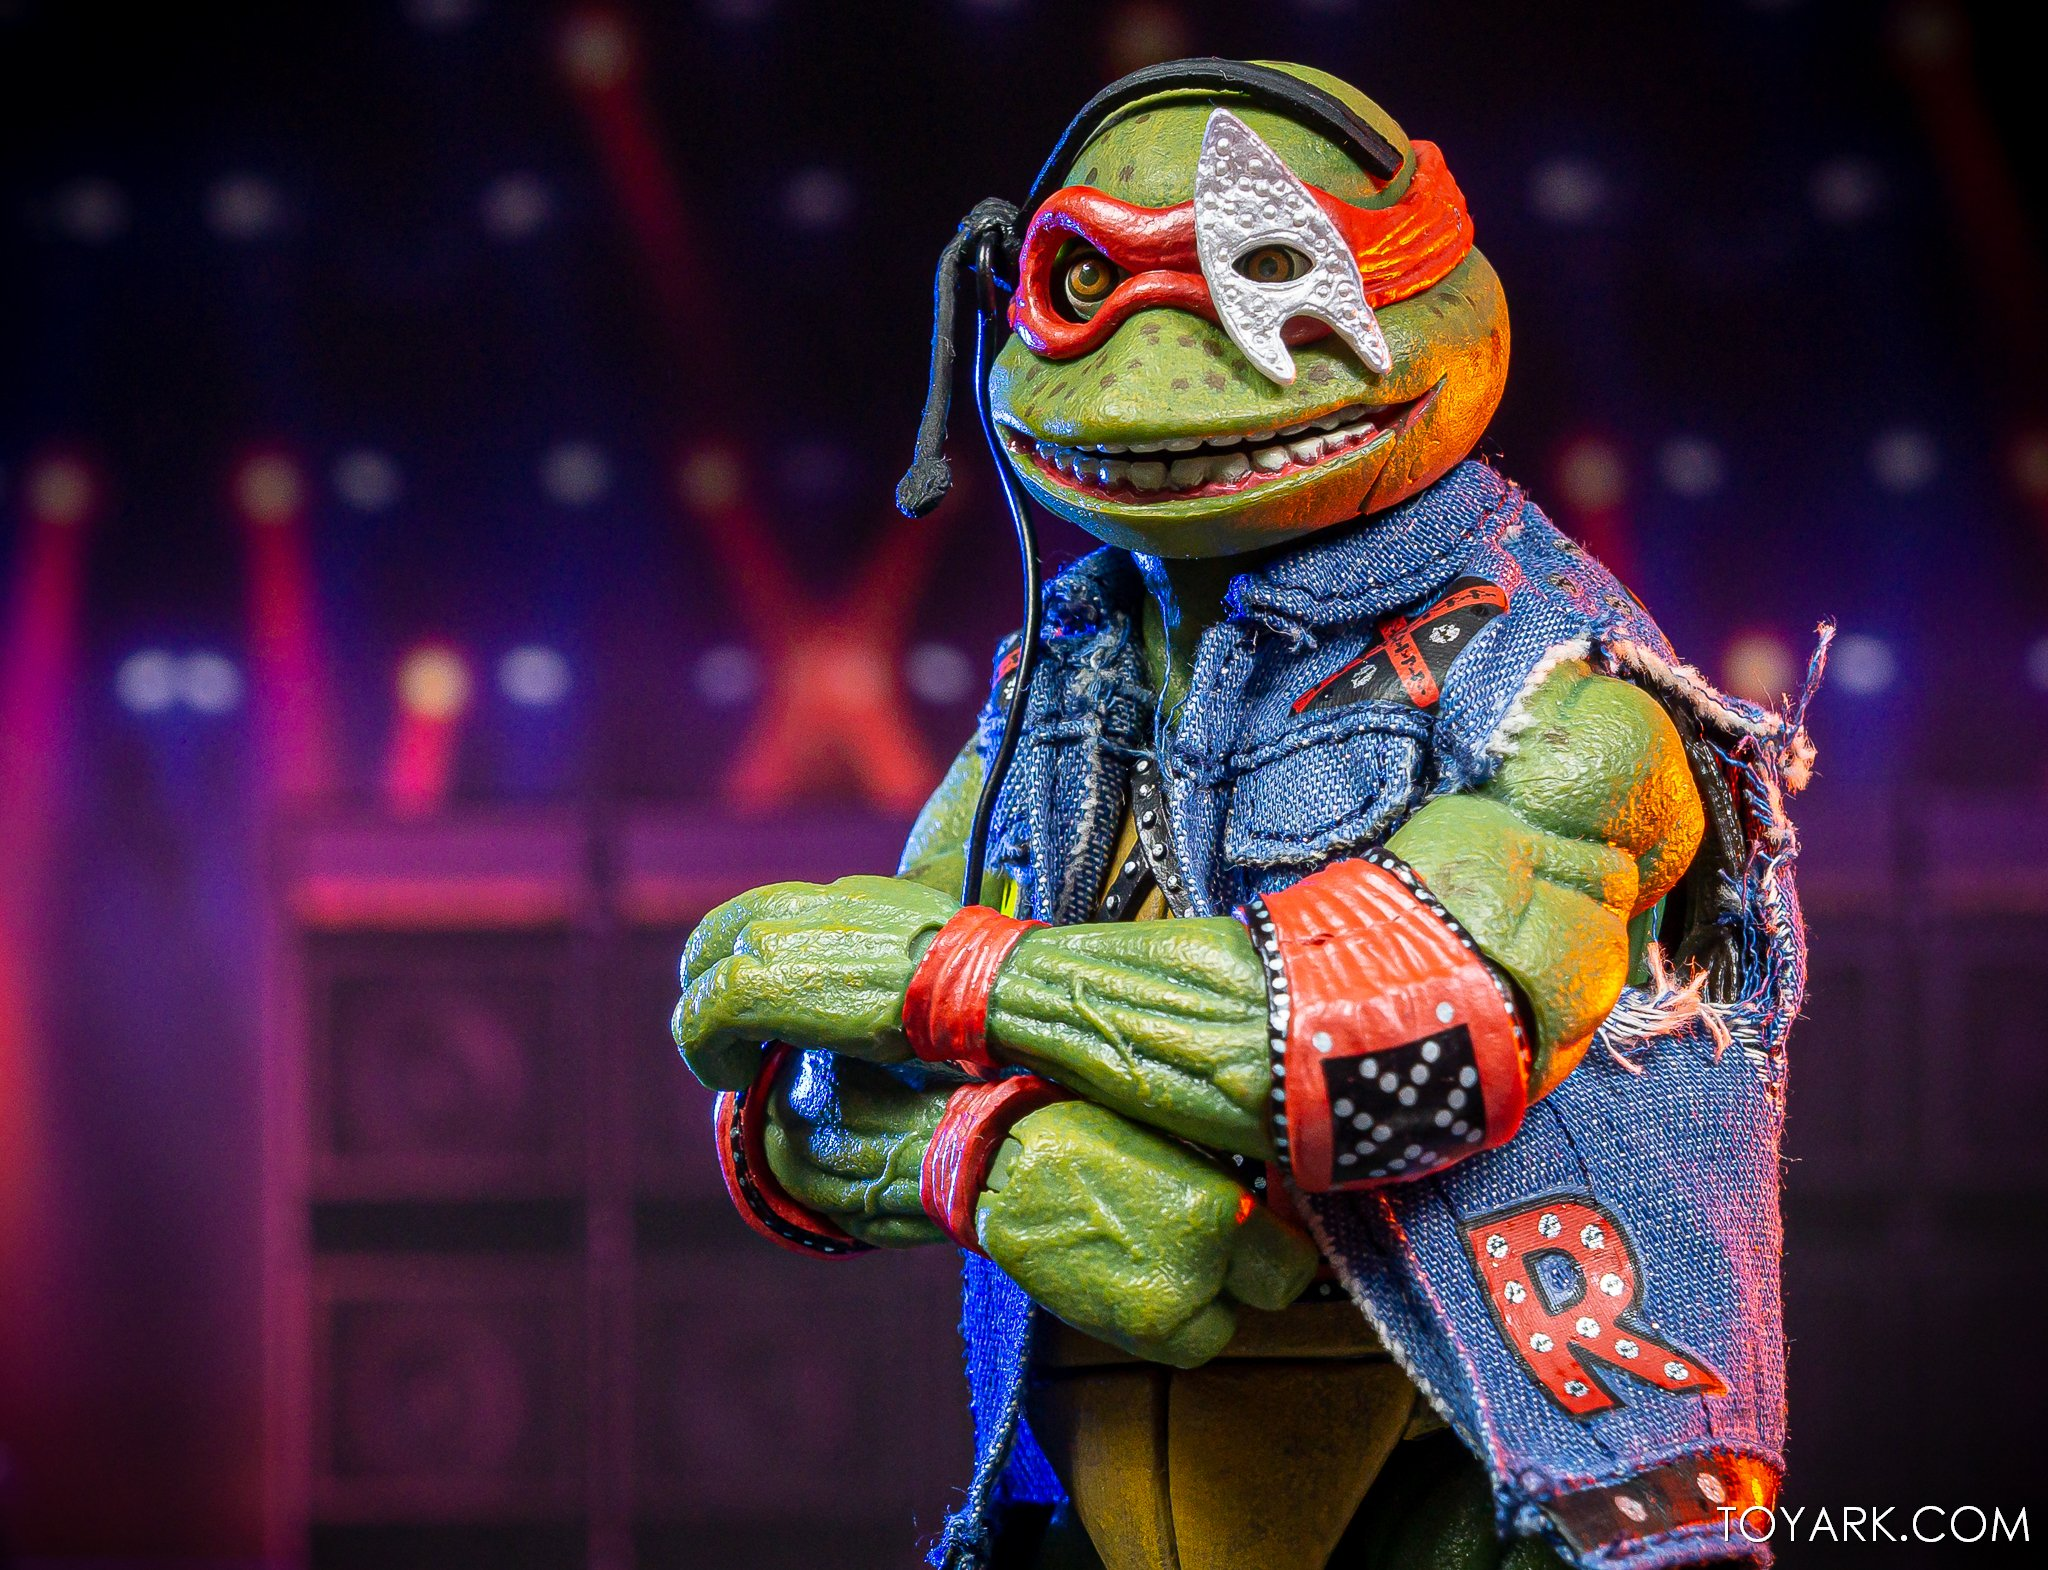 https://news.toyark.com/wp-content/uploads/sites/4/2020/07/SDCC-2020-TMNT-Musical-Mutagen-Tour-064.jpg